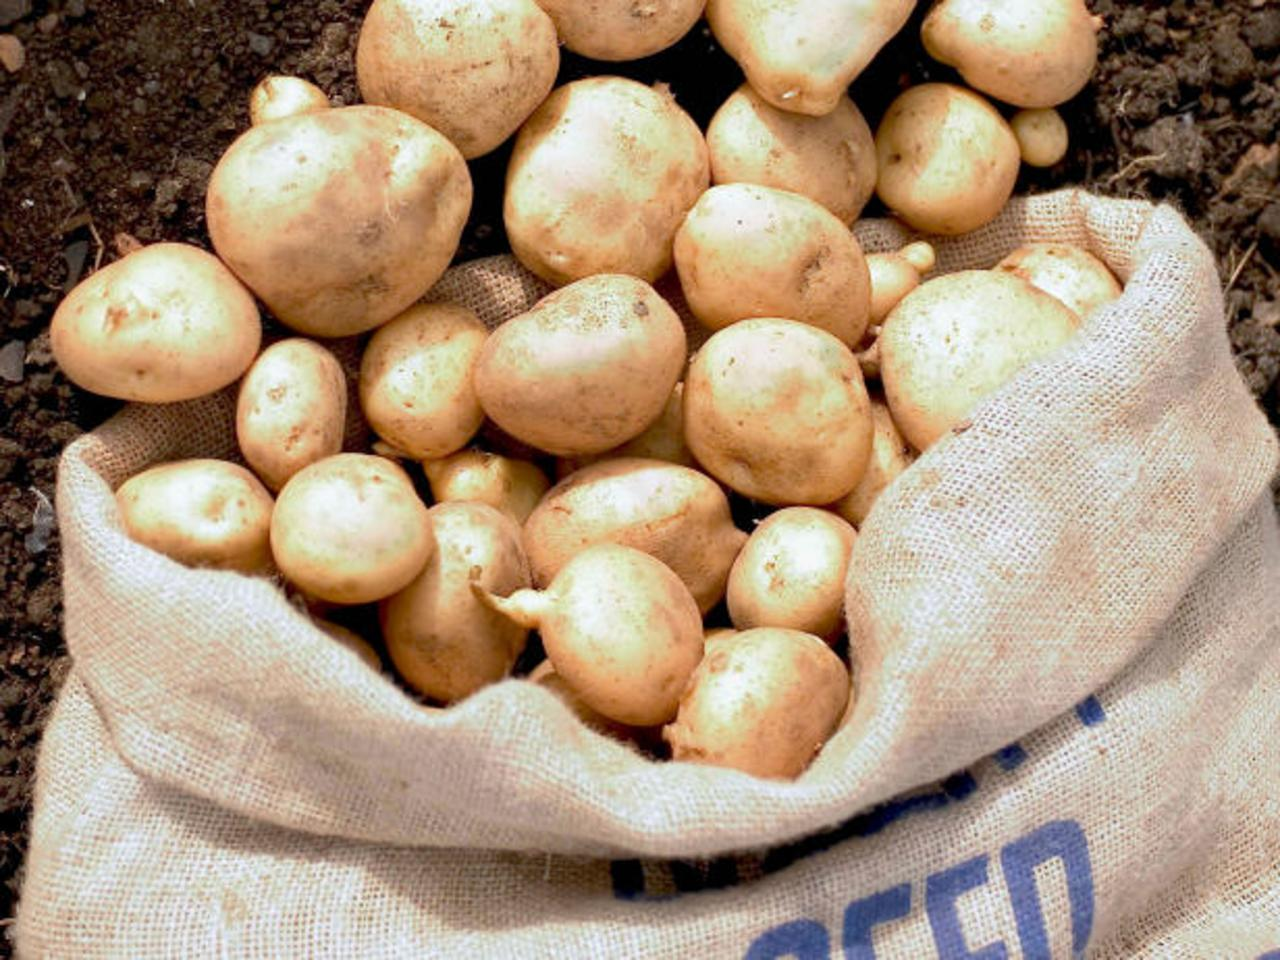 gleaned potatoes from potato harvest